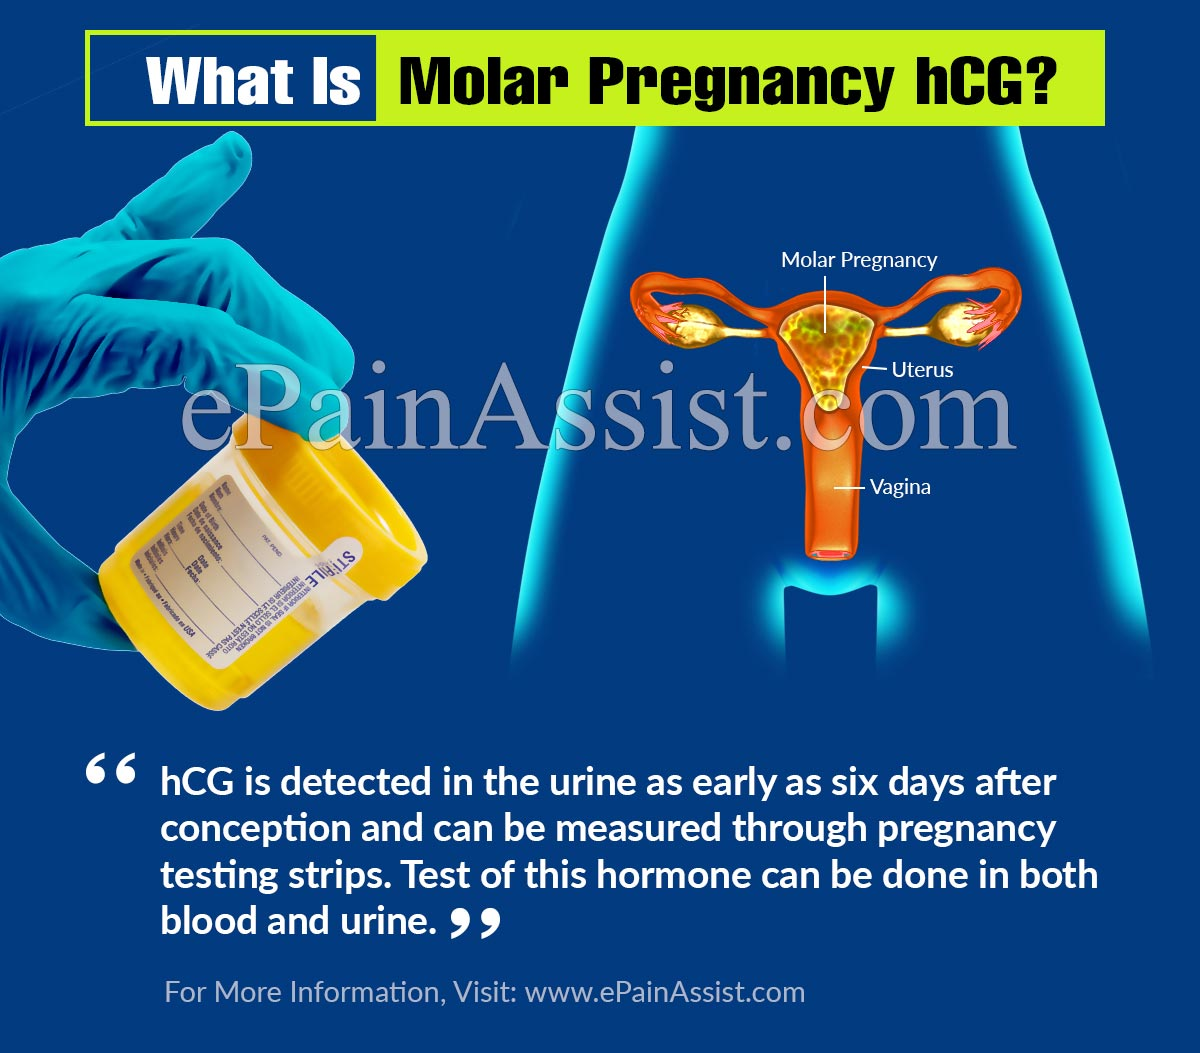 What Is Molar Pregnancy hCG?